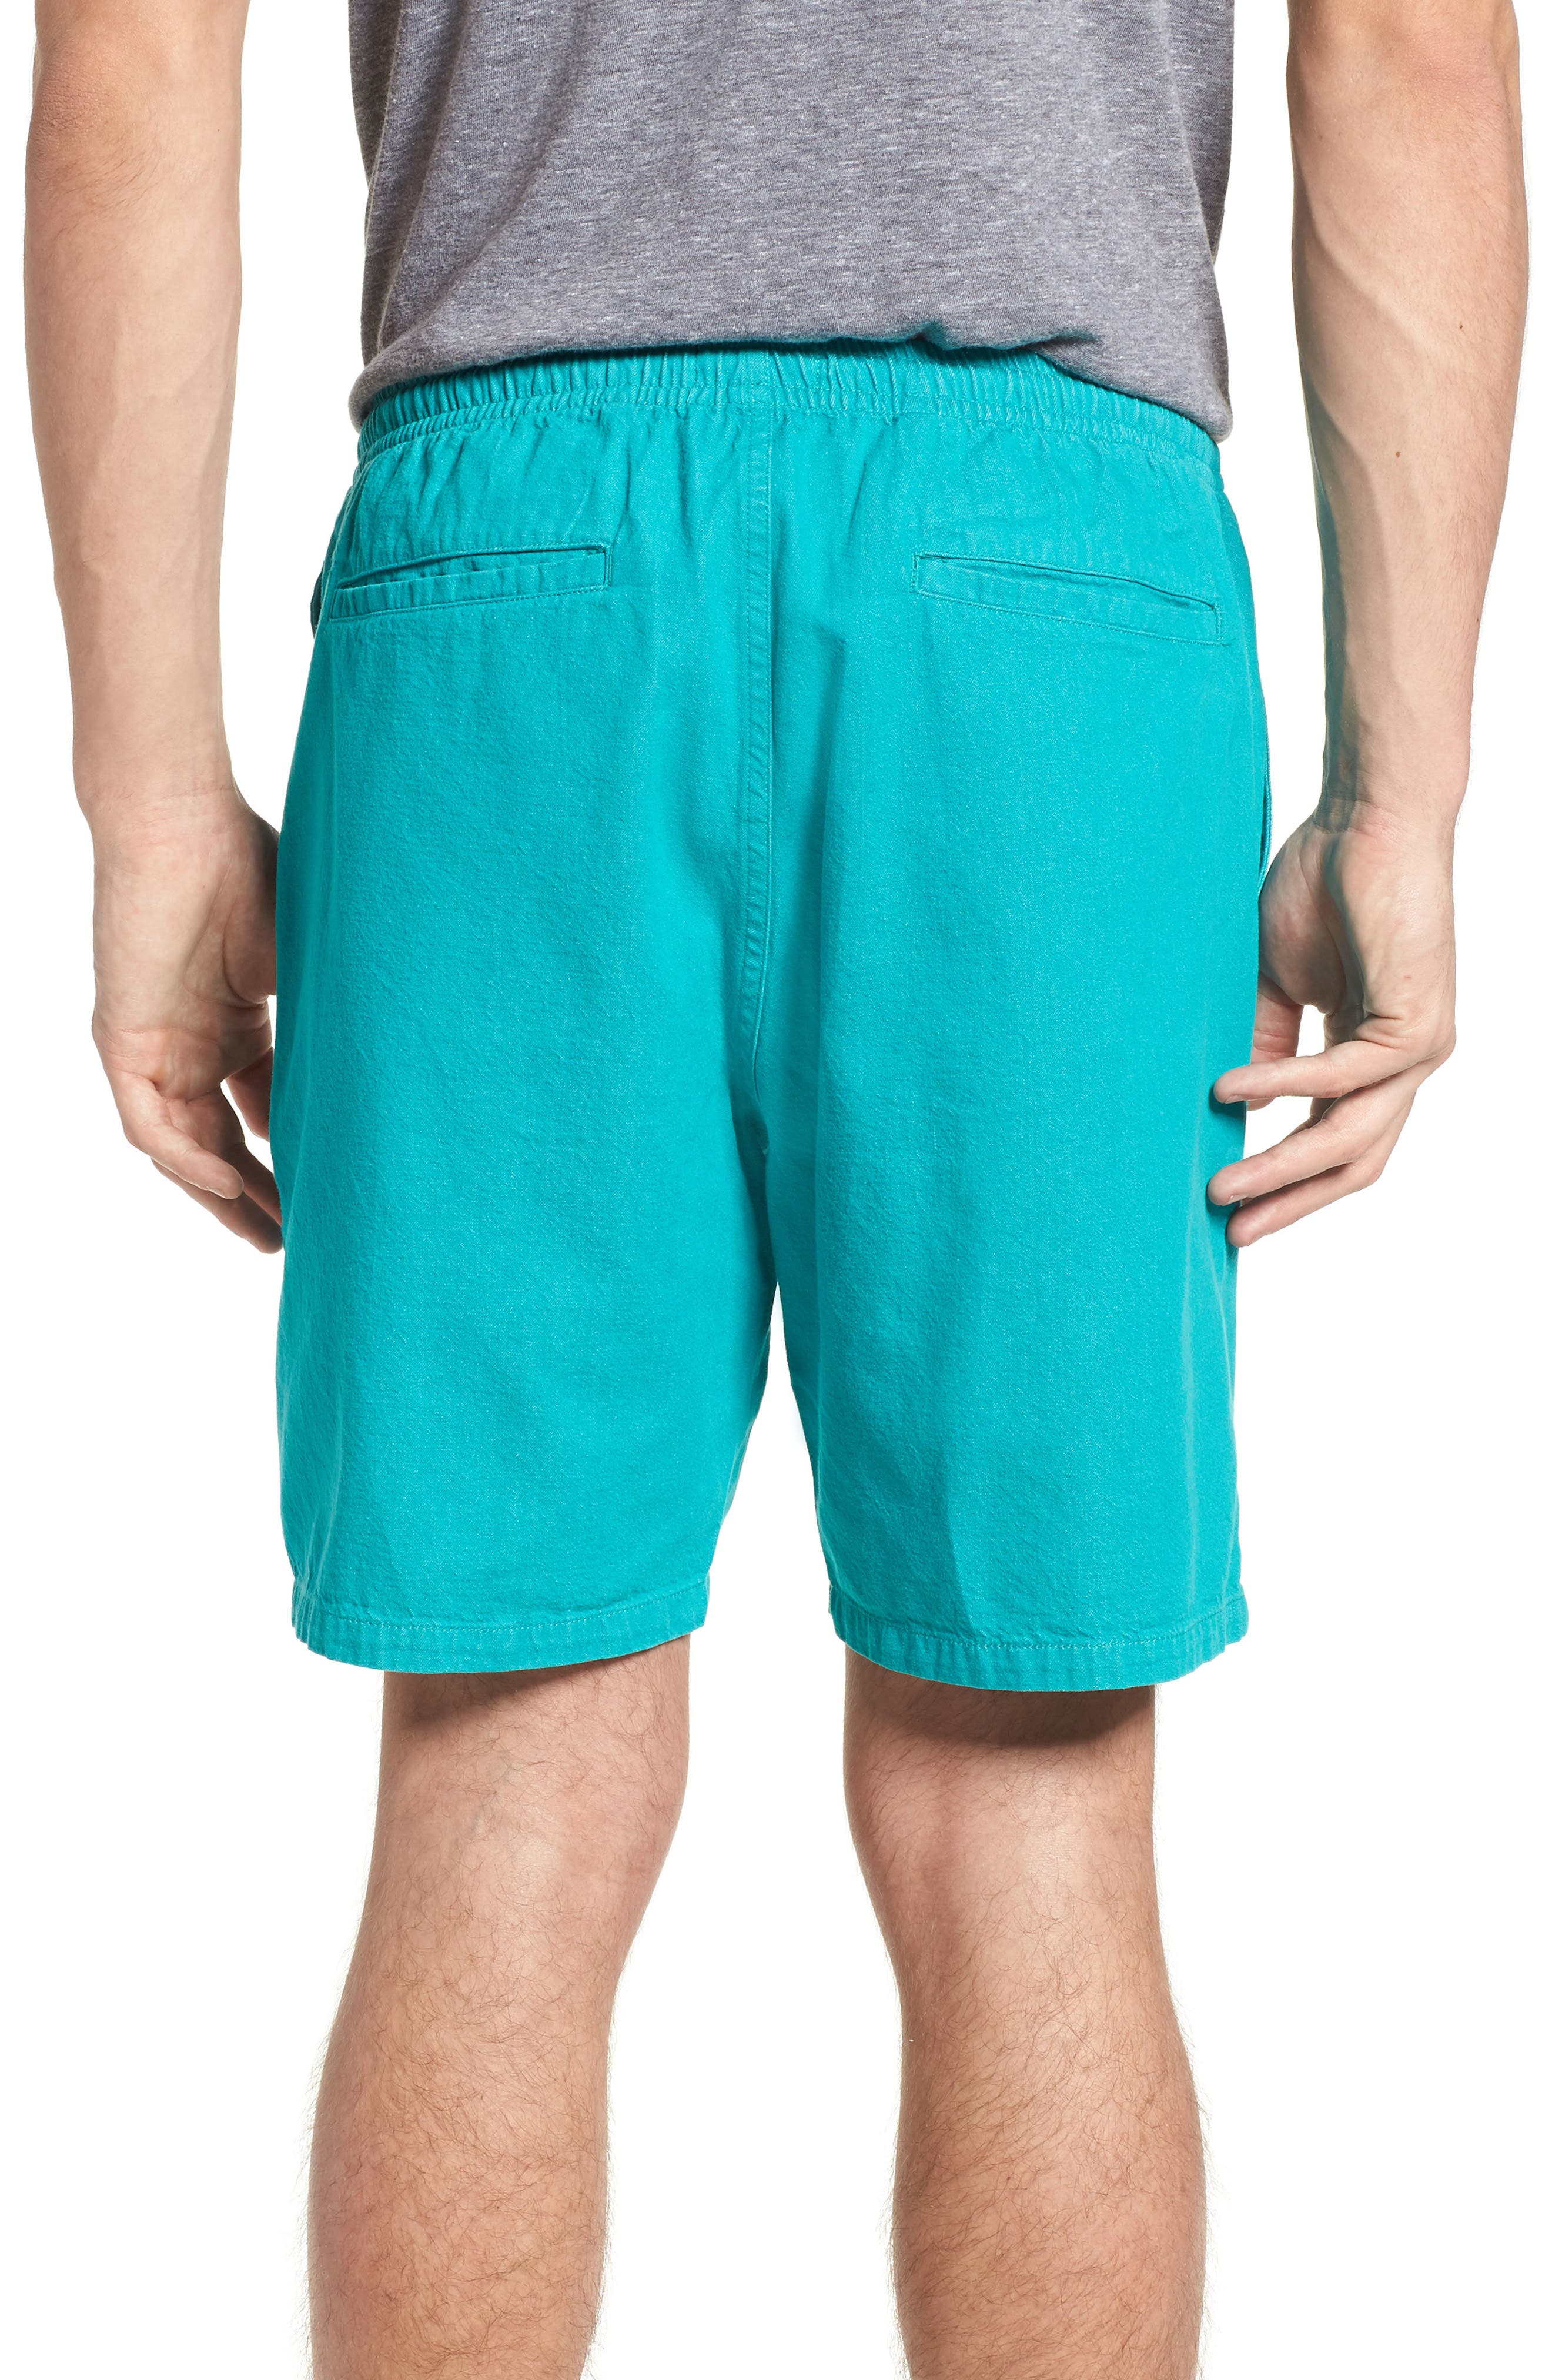 Keble Drawstring Shorts,                             Alternate thumbnail 2, color,                             445